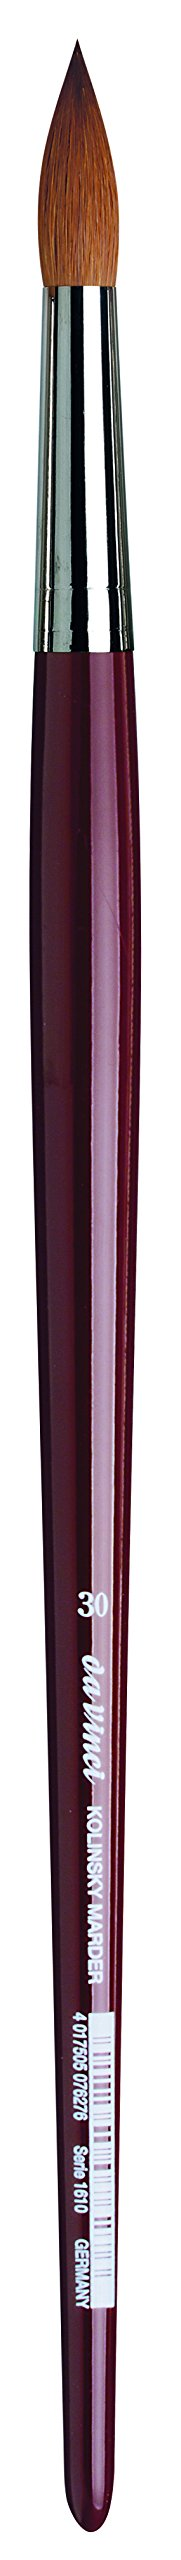 da Vinci Oil & Acrylic Series 1610 Oil Paint Brush, Round Kolinsky Red Sable, Size 30 (1610-30)